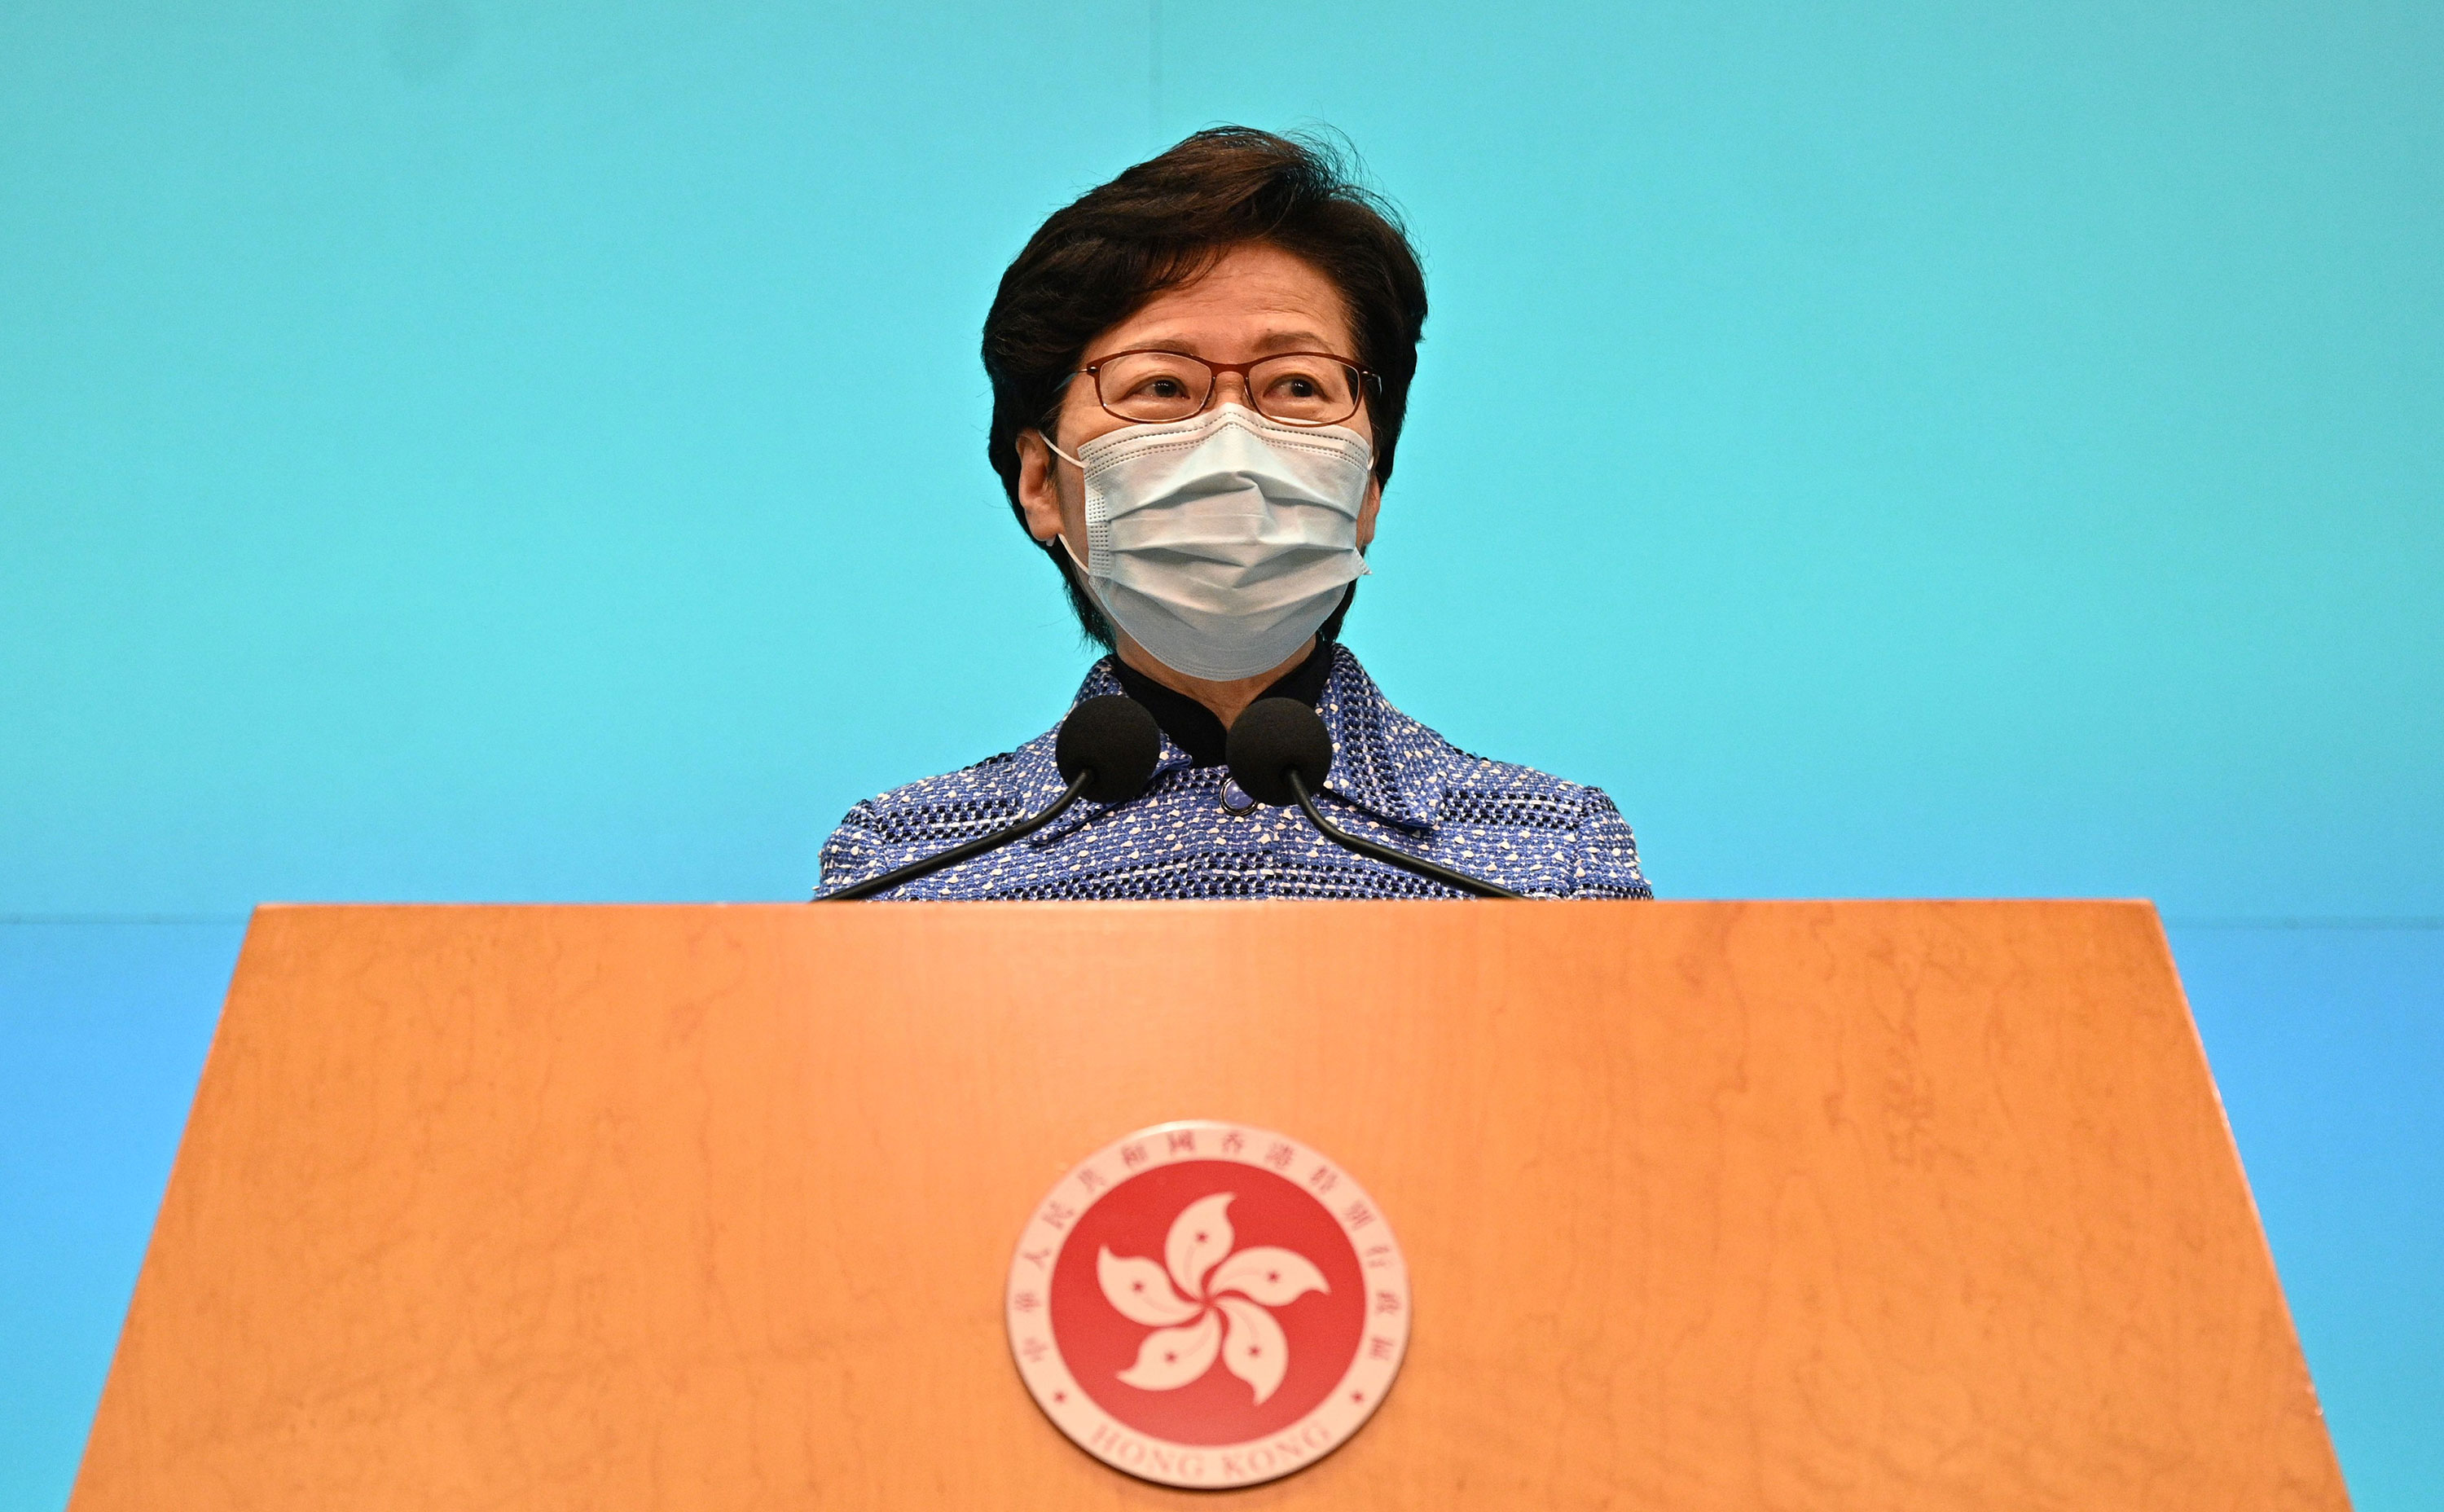 Hong Kong Chief Executive Carrie Lam speaks during a news conference at the government headquarters in Hong Kong on April 22.